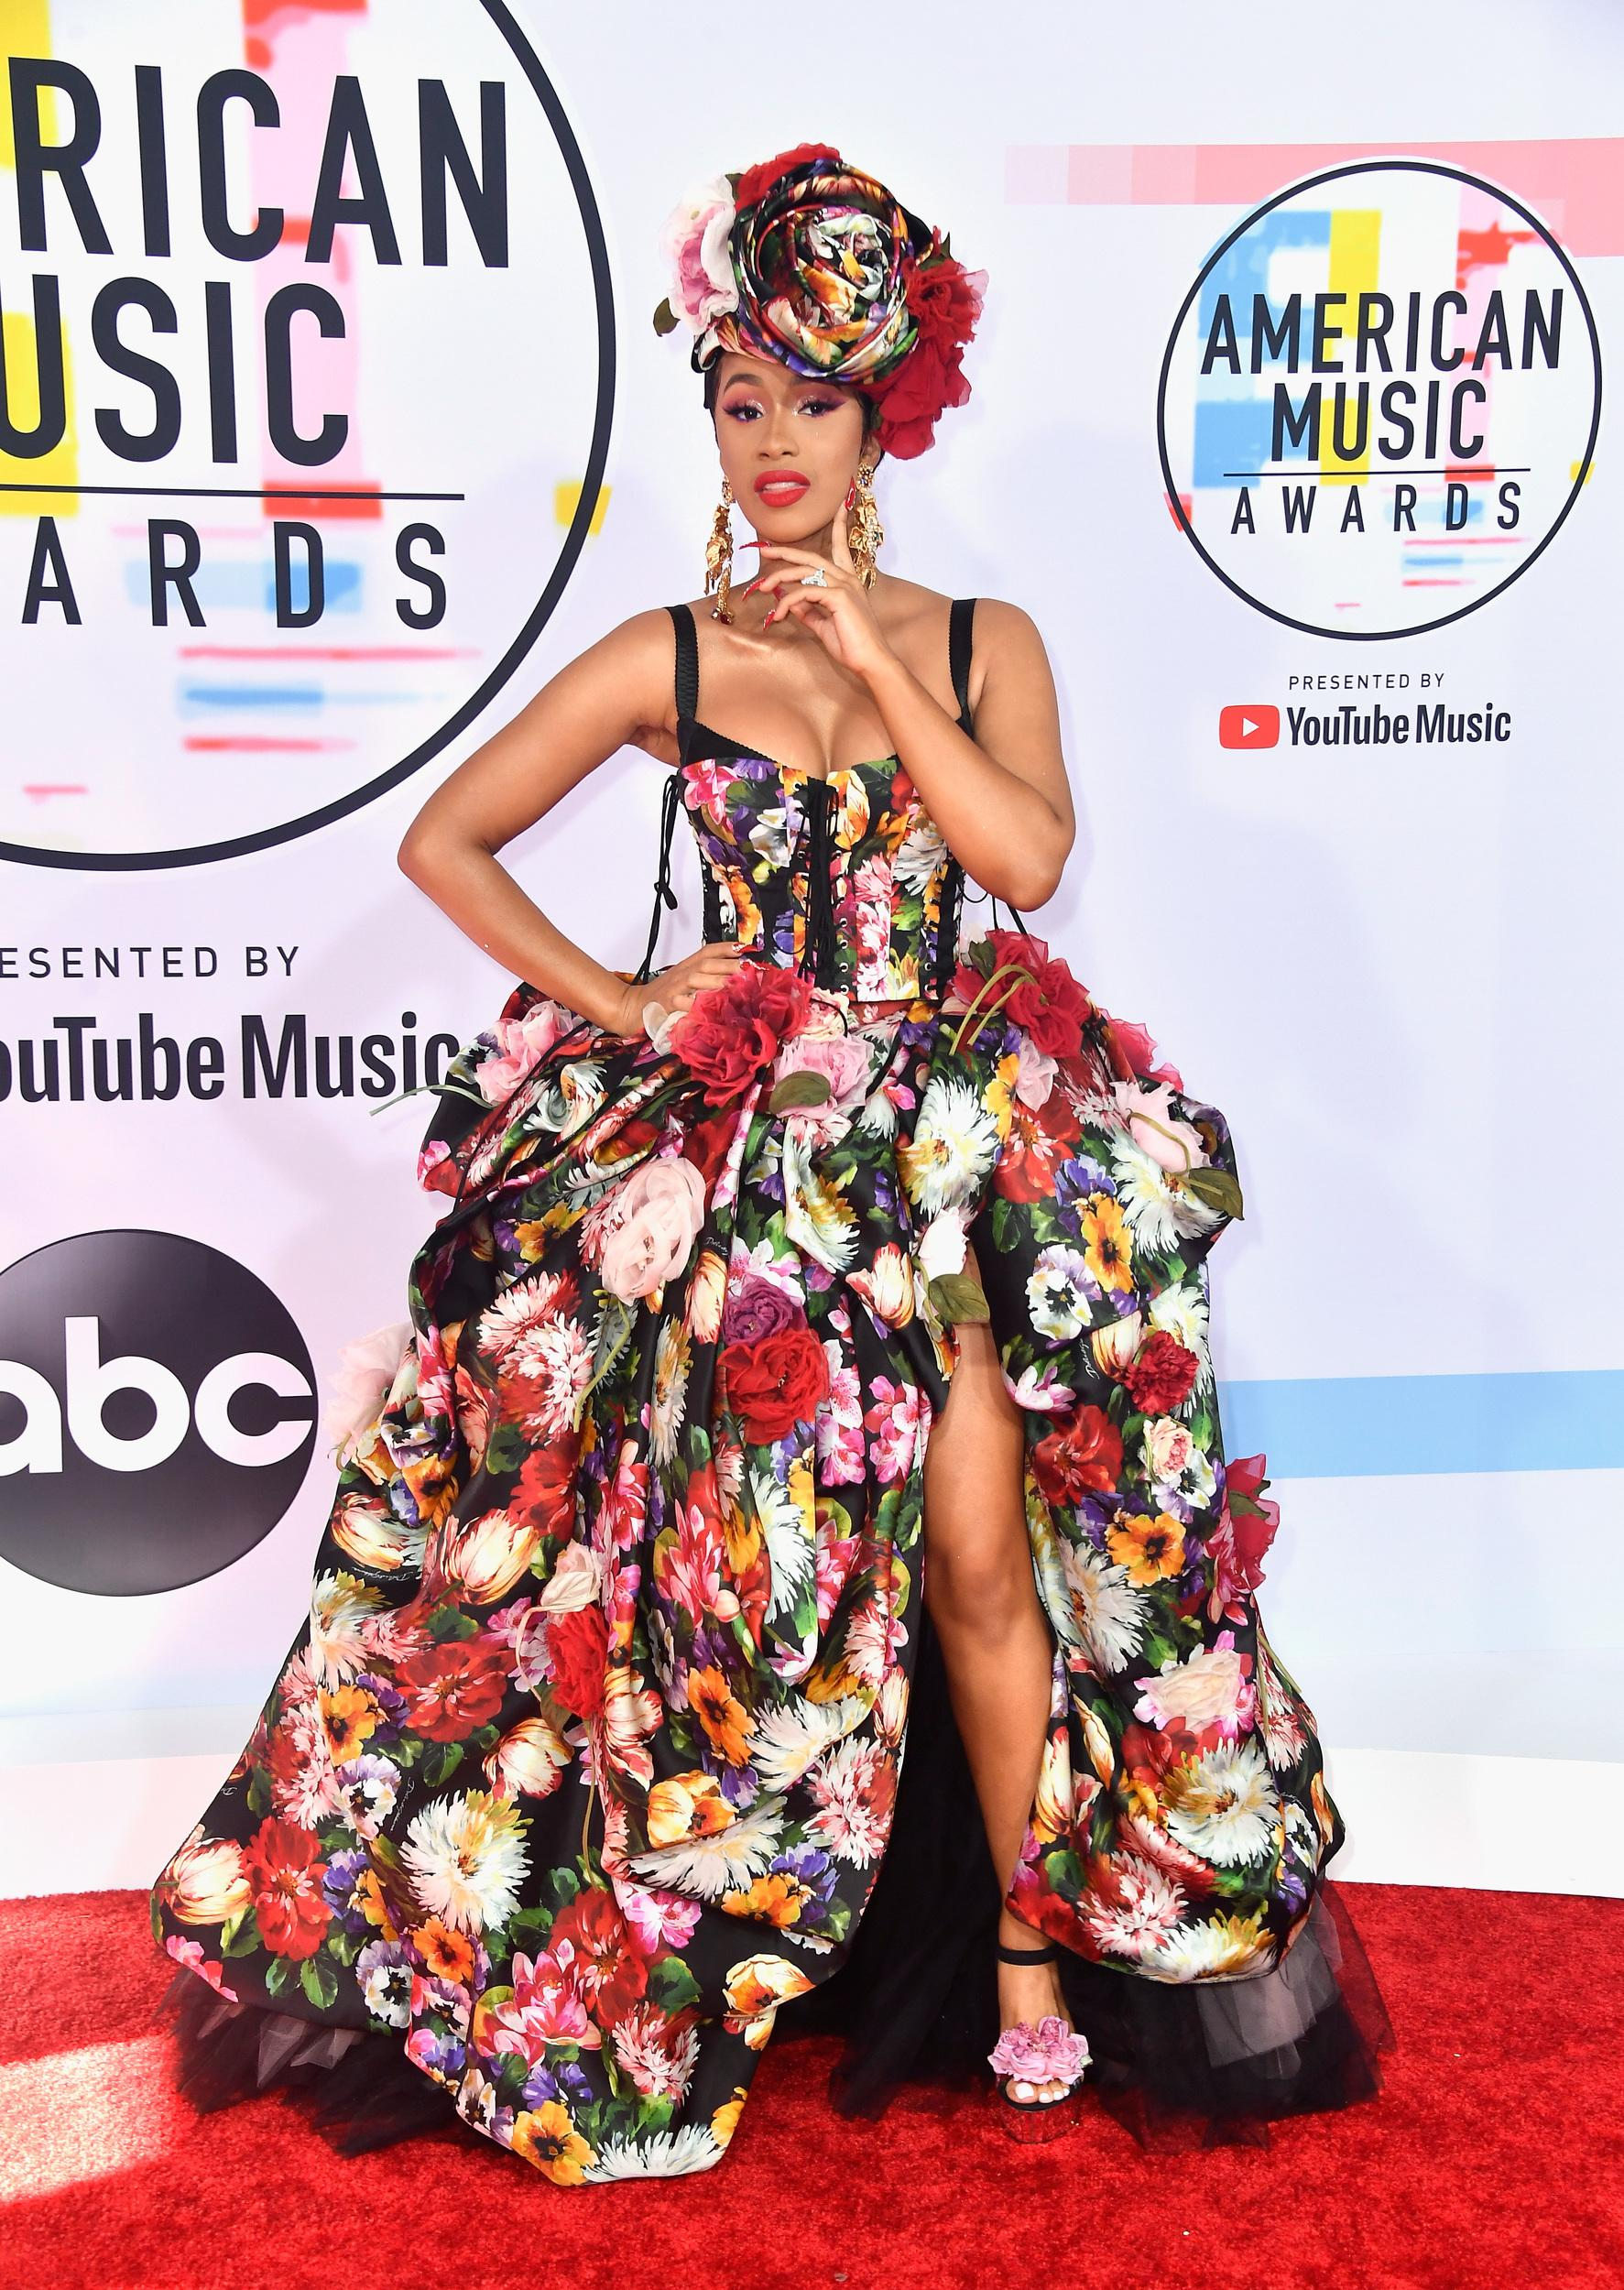 LOS ANGELES, CA - OCTOBER 09:  Cardi B attends the 2018 American Music Awards at Microsoft Theater on October 9, 2018 in Los Angeles, California.  (Photo by Frazer Harrison/Getty Images)